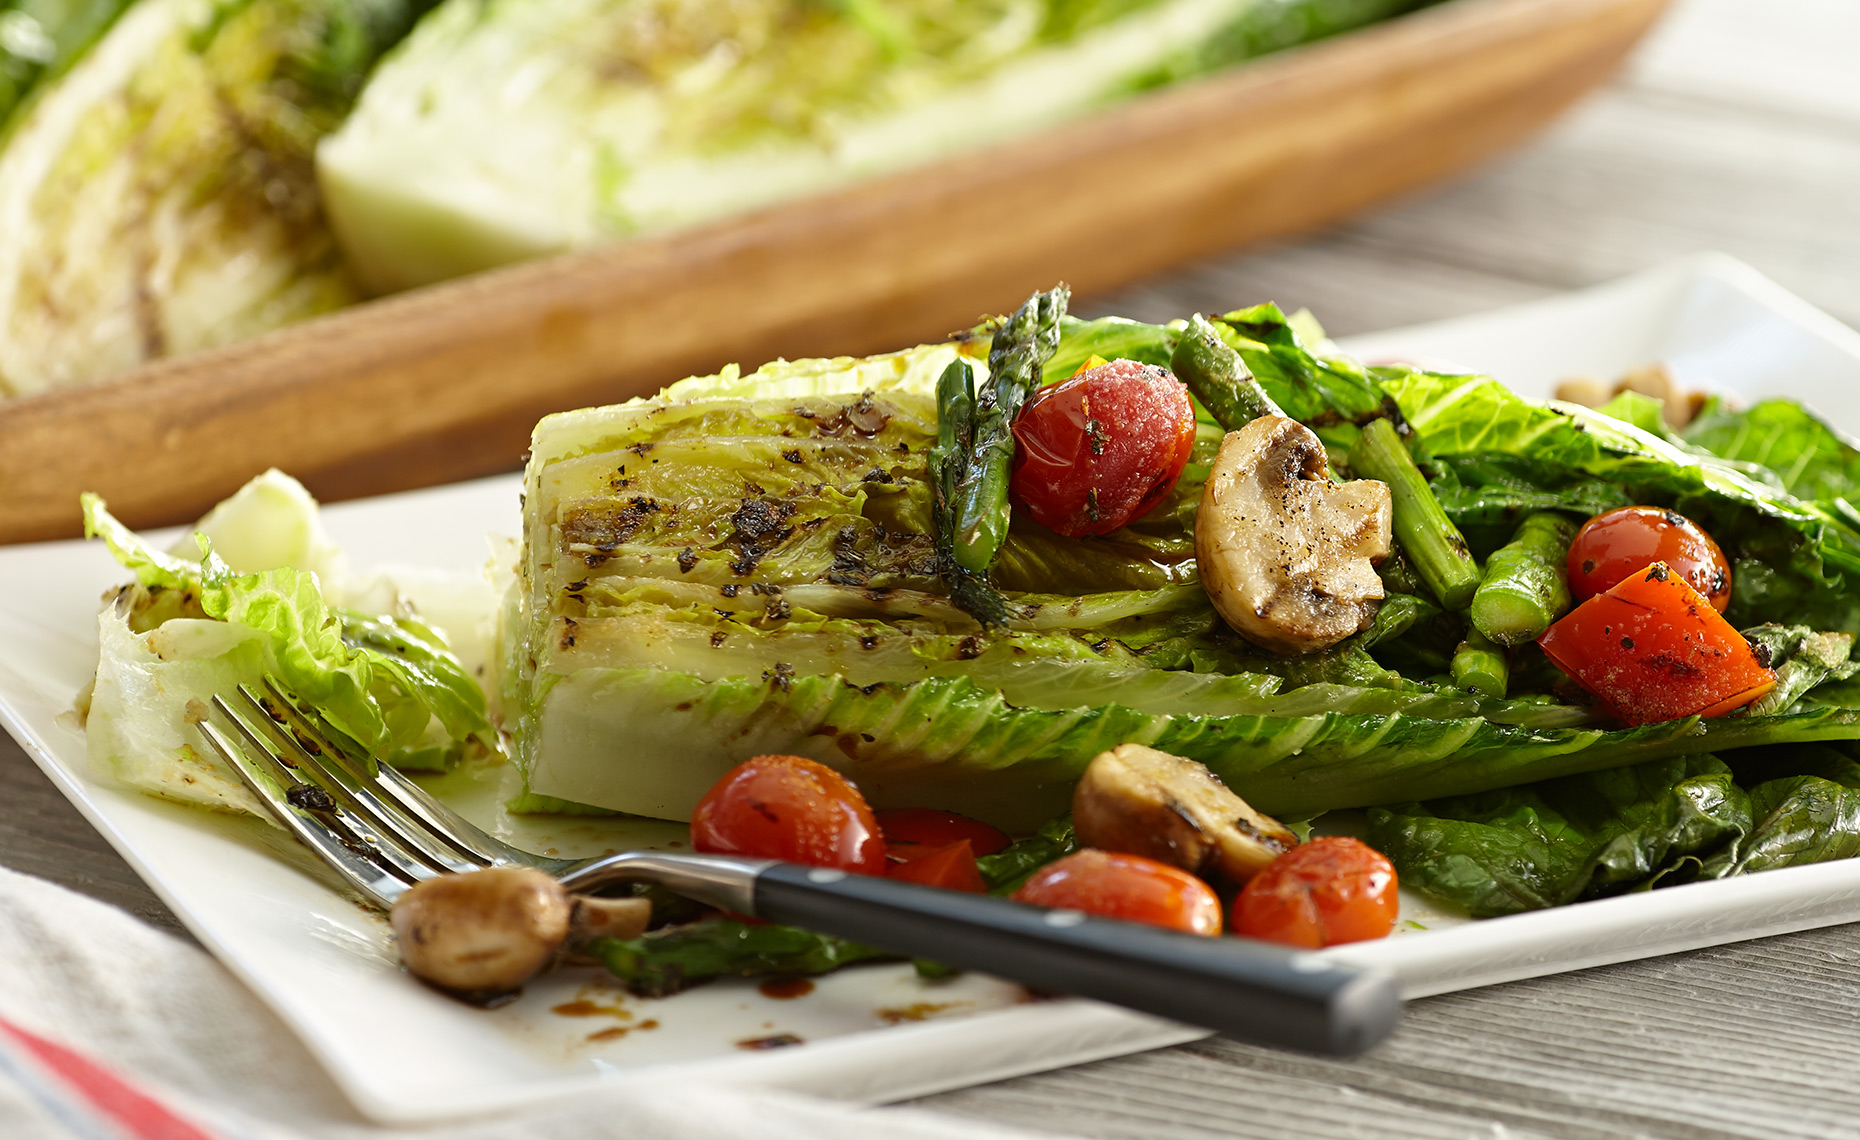 Food Photographer, Vegetable photography, Fruit photography | Pohuski Studios,  Grilled Romaine Salad